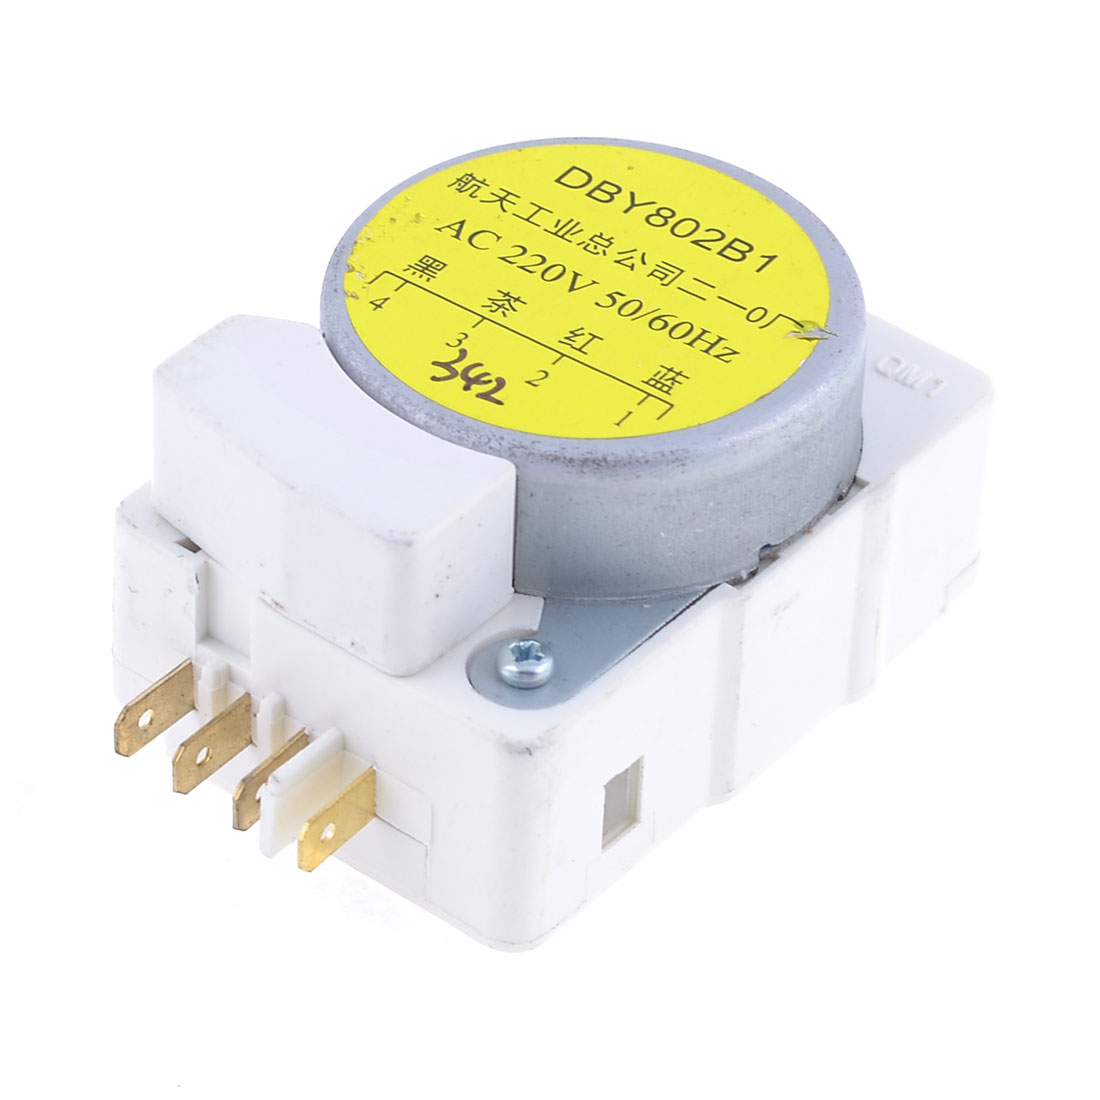 Marked 4 Pin Refrigerator Defrost Timer Control AC 220V 50Hz/60Hz